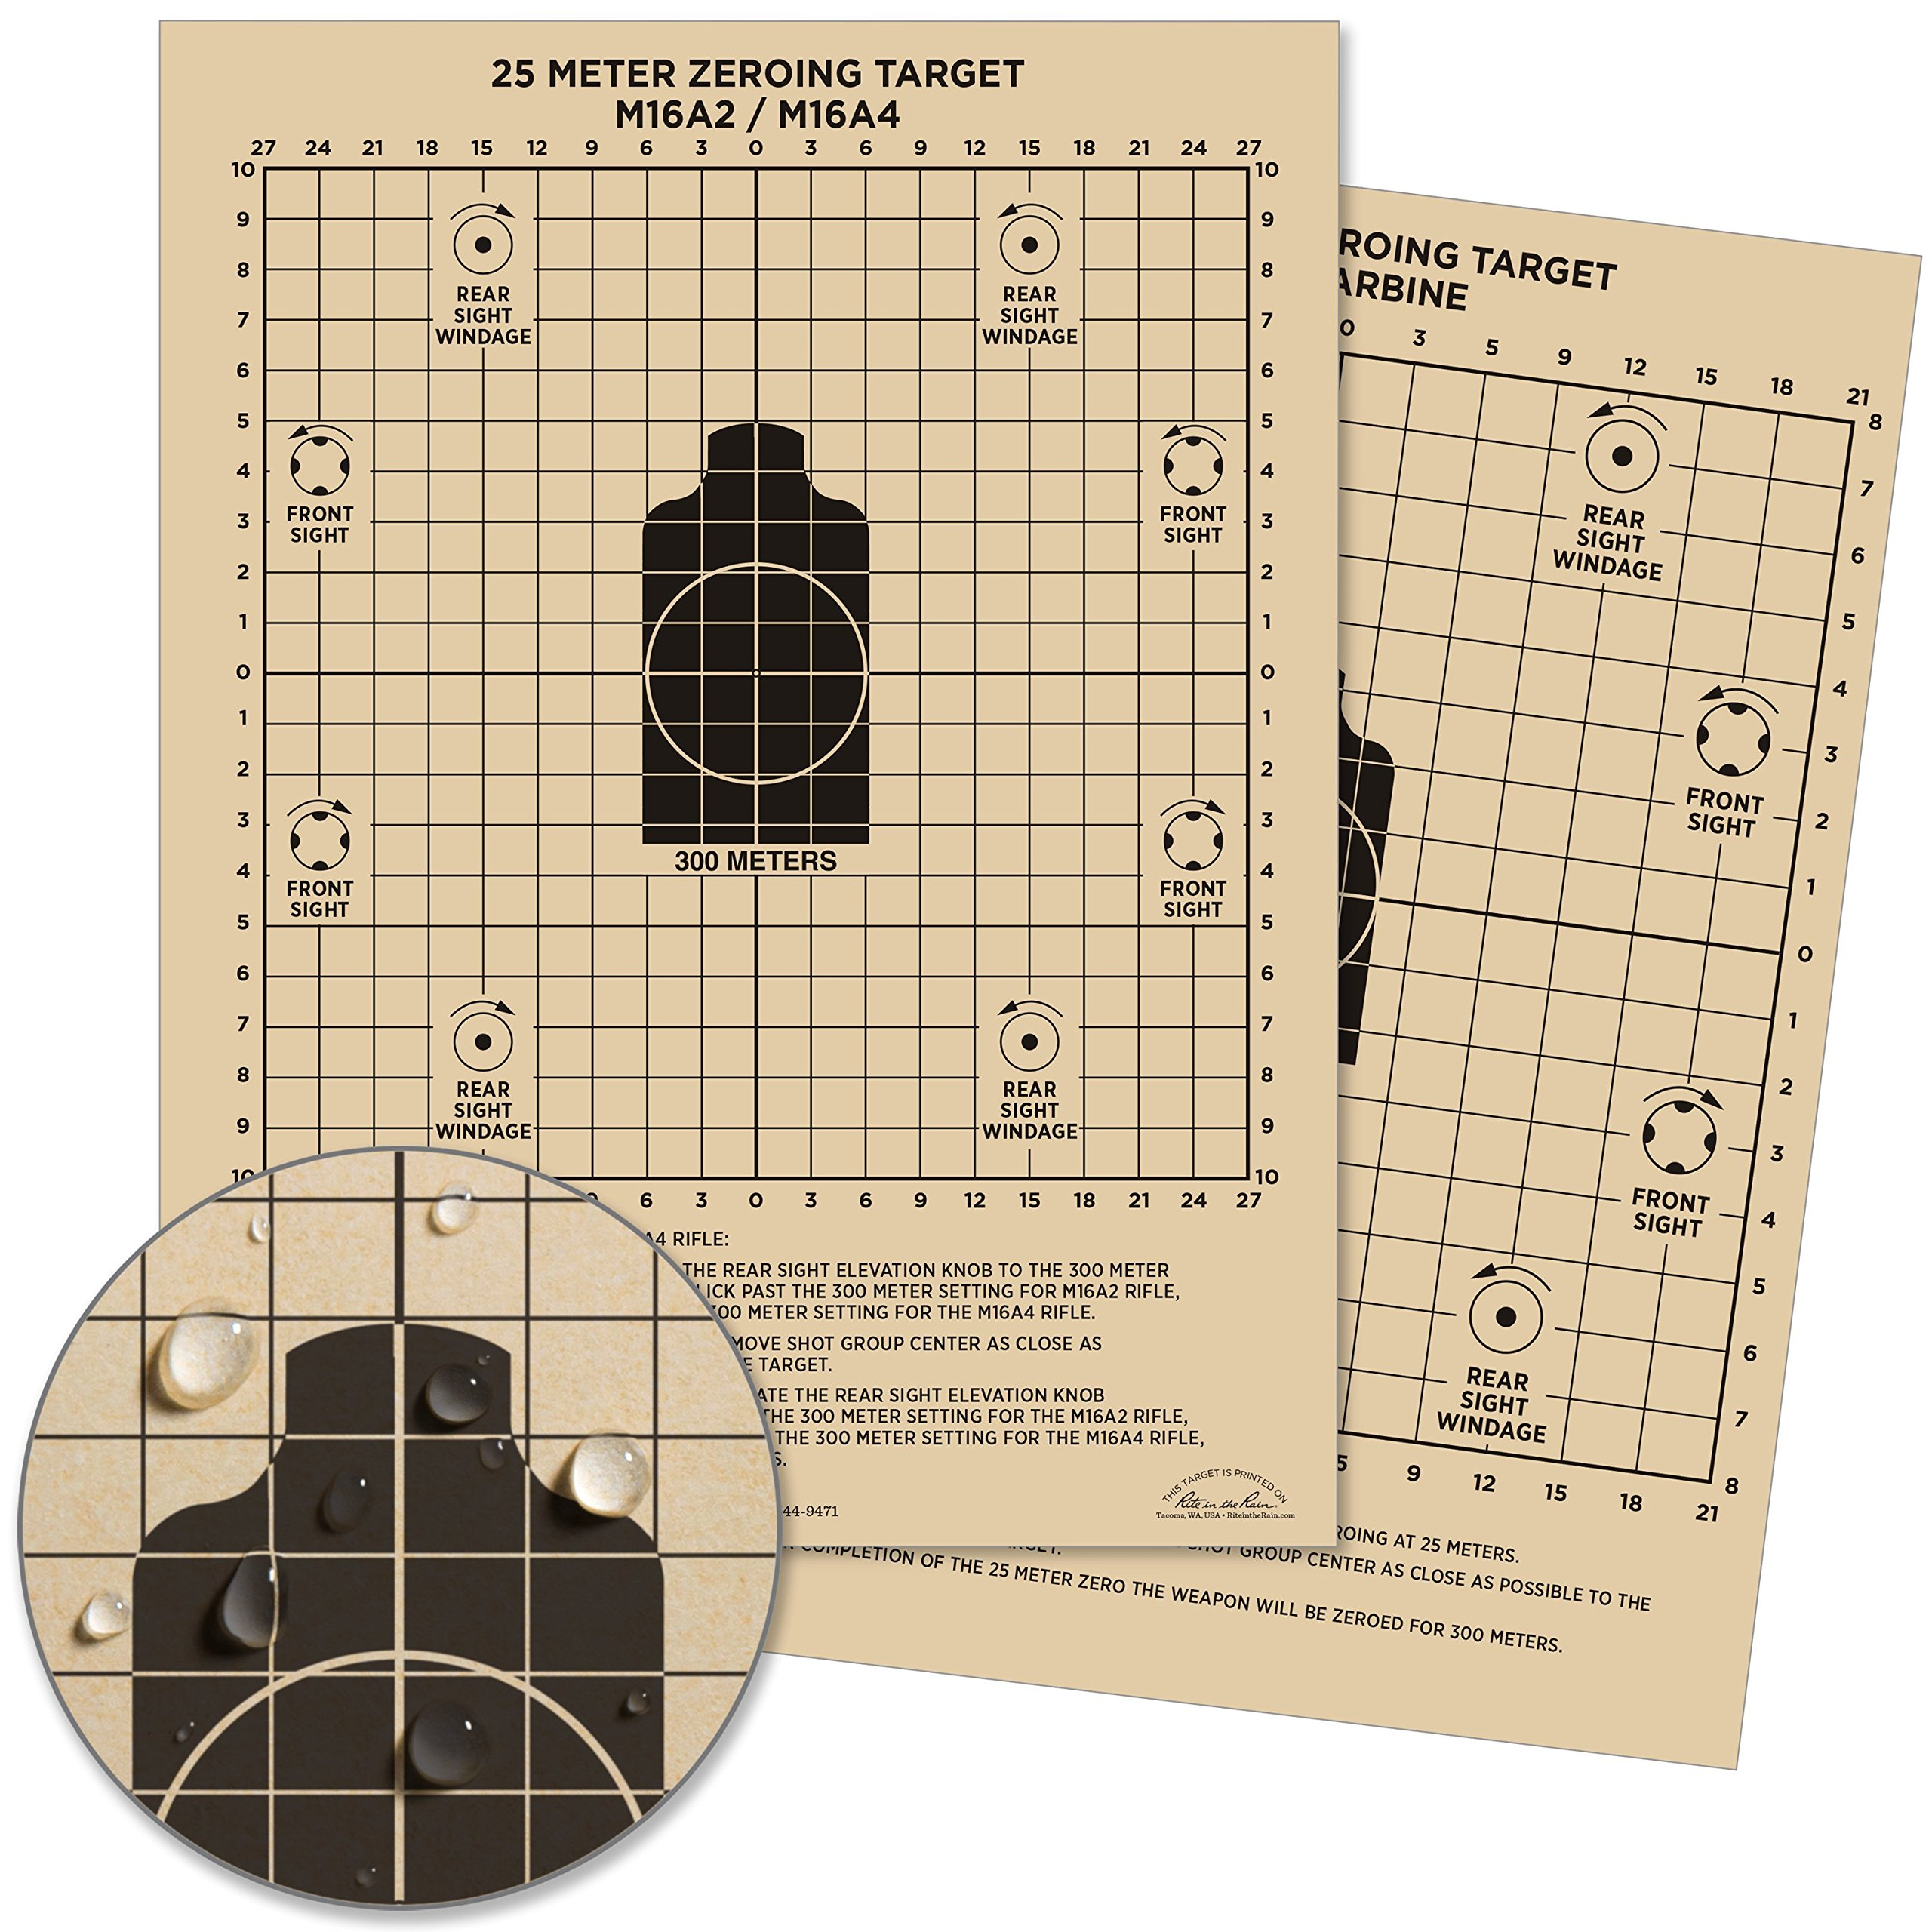 Rite in the Rain Weatherproof 25 Meter Target, 8 1/2'' x 11'', Tan, M16A2 / M16A4 Front, M4 CARBINE Back, 100 Sheet Pack (No. 9125)